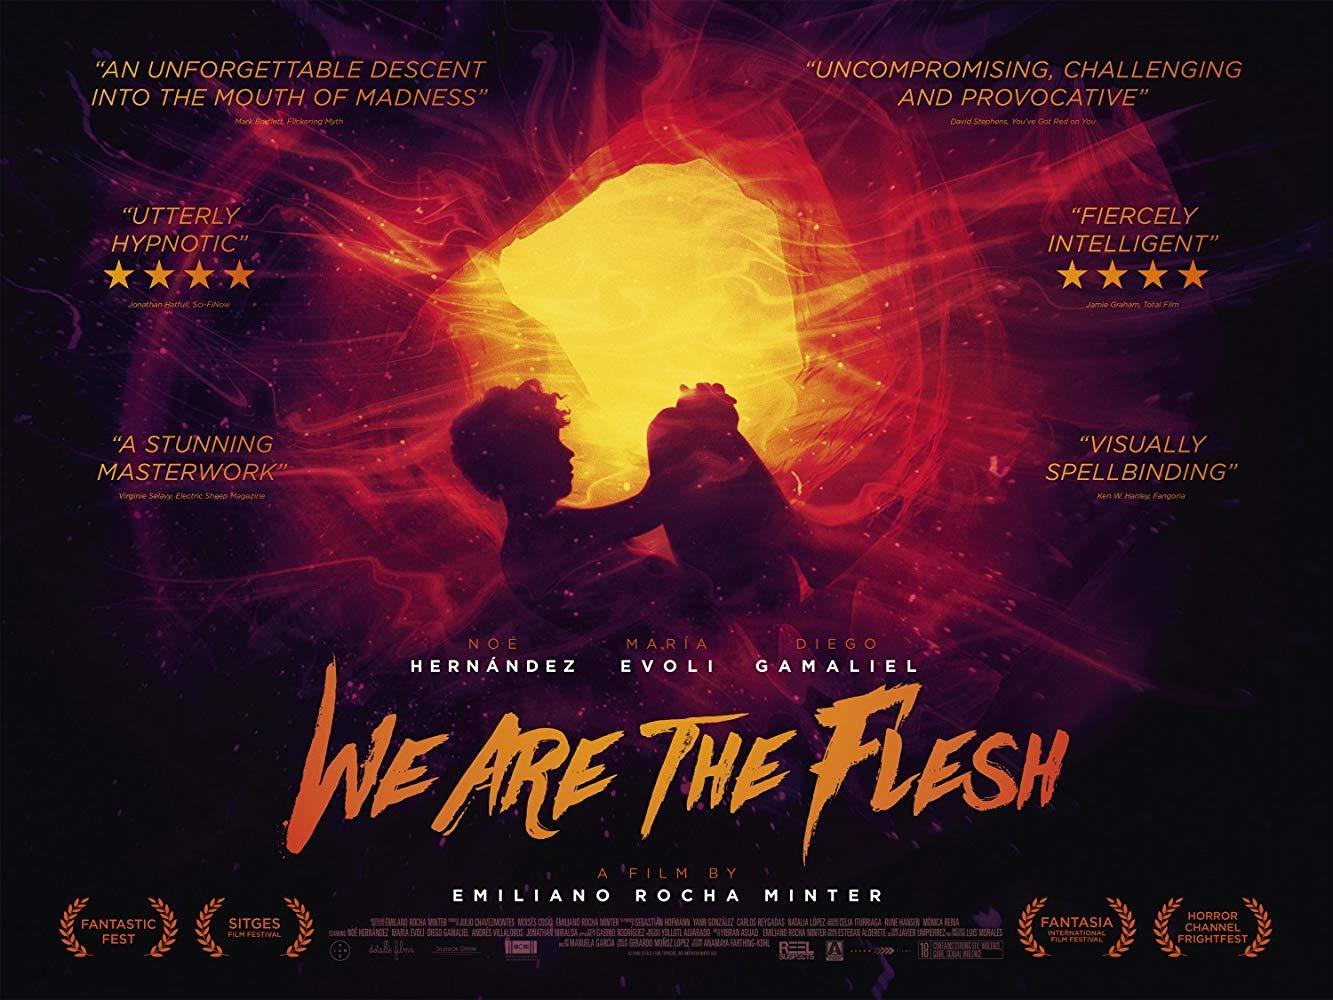 مشاهدة فيلم We Are the Flesh (2016) مترجم HD اون لاين